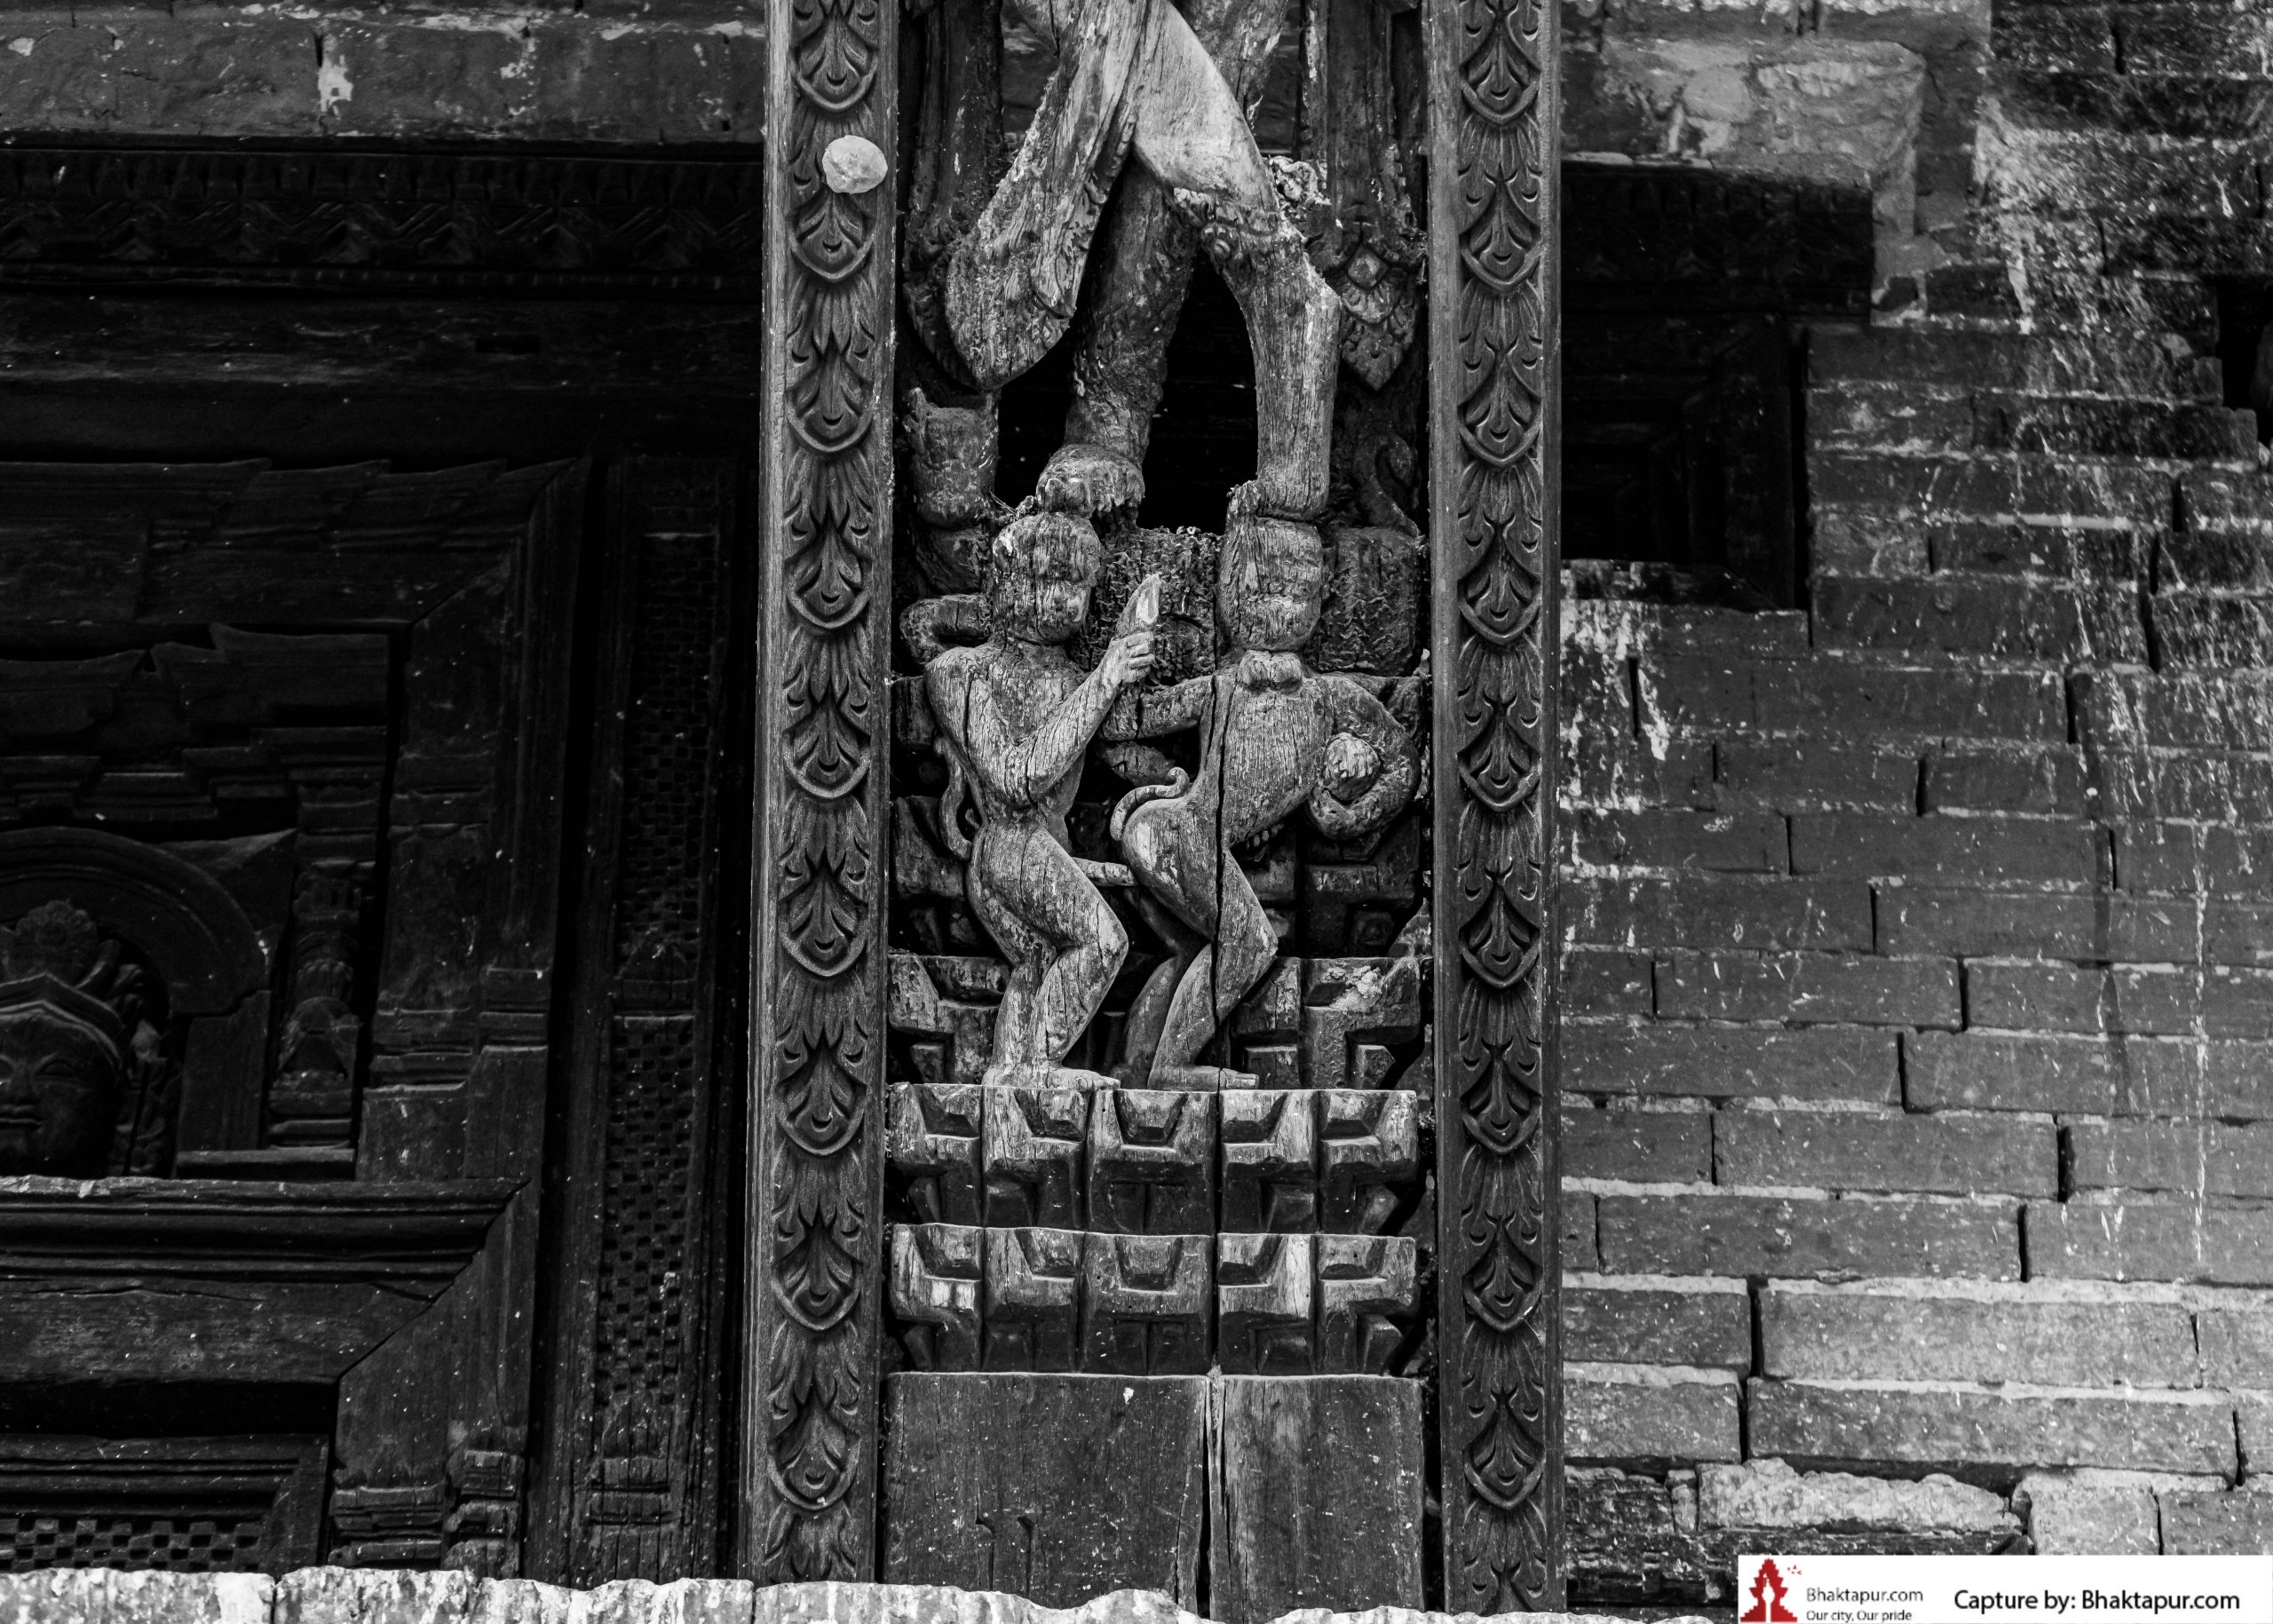 https://www.bhaktapur.com/wp-content/uploads/2021/08/erotic-carving-88-of-137-scaled.jpg